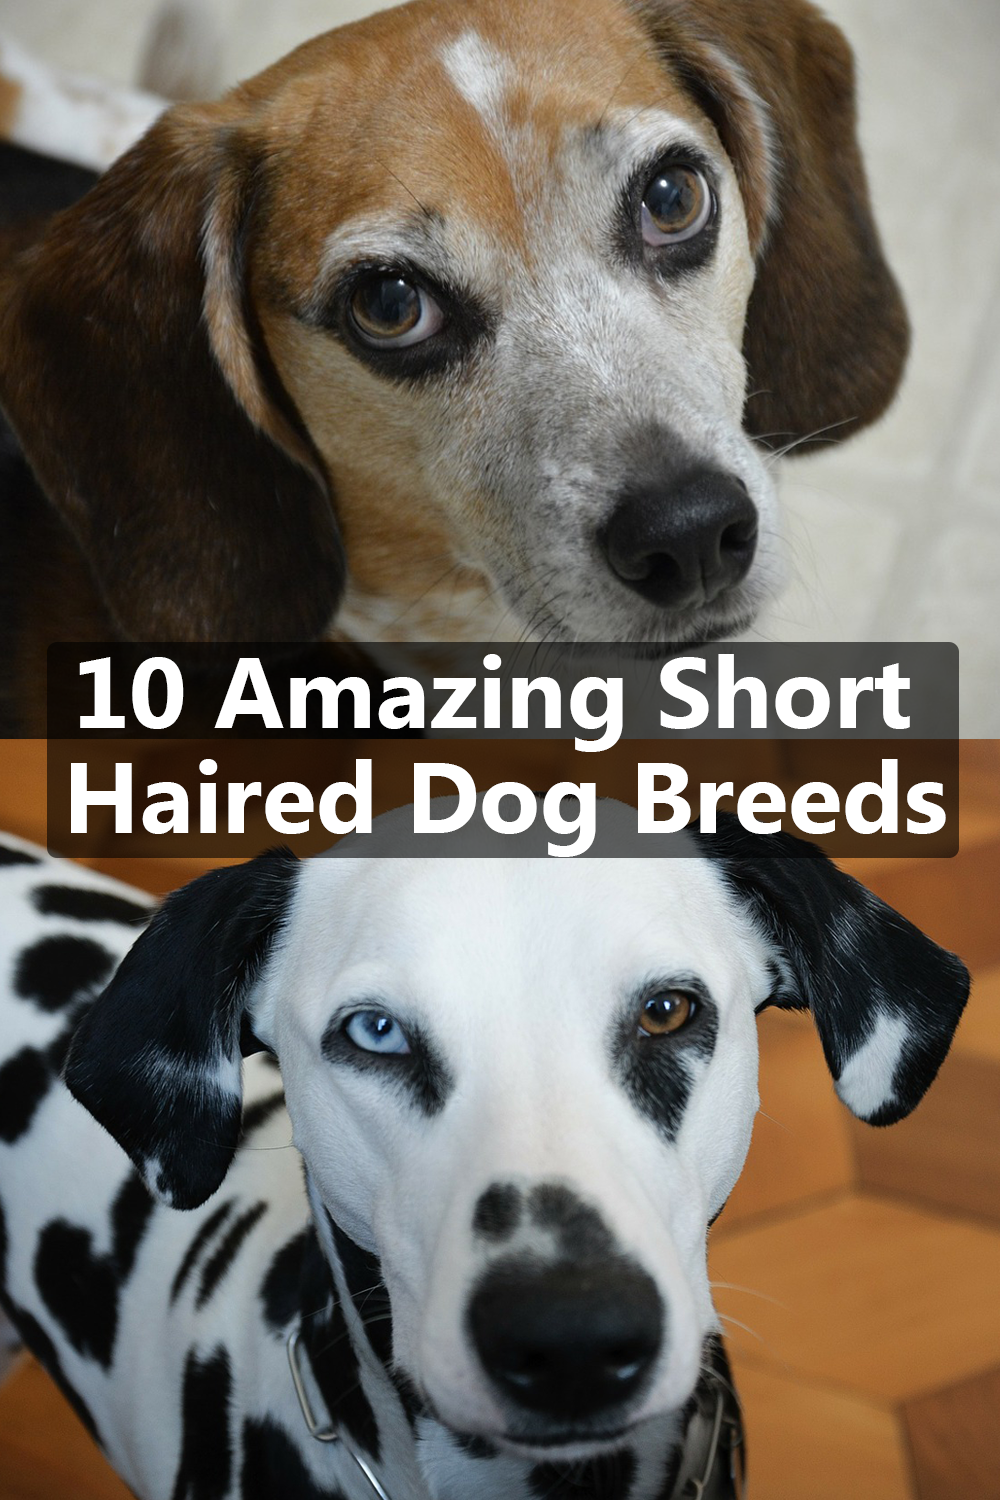 10 Amazing Short Haired Dog Breeds Short Haired Dog Breeds Short Haired Dogs Dog Breeds